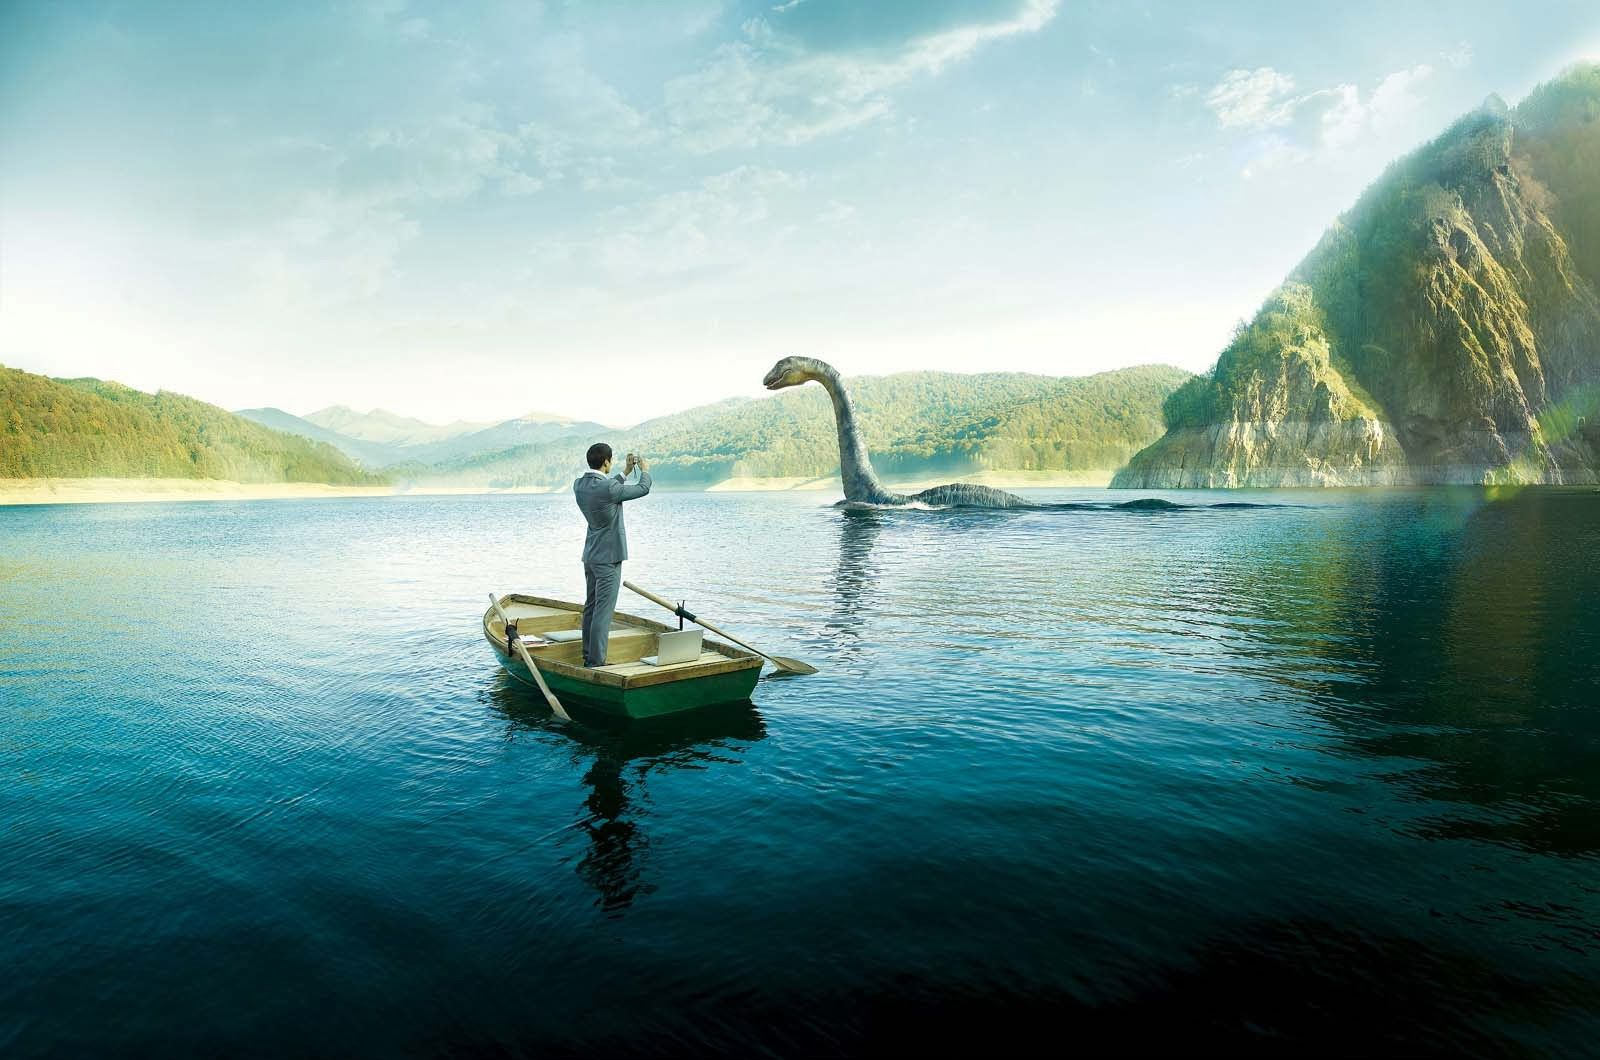 Loch Ness Monster Loch Ness Monster Movie Legendary Monsters